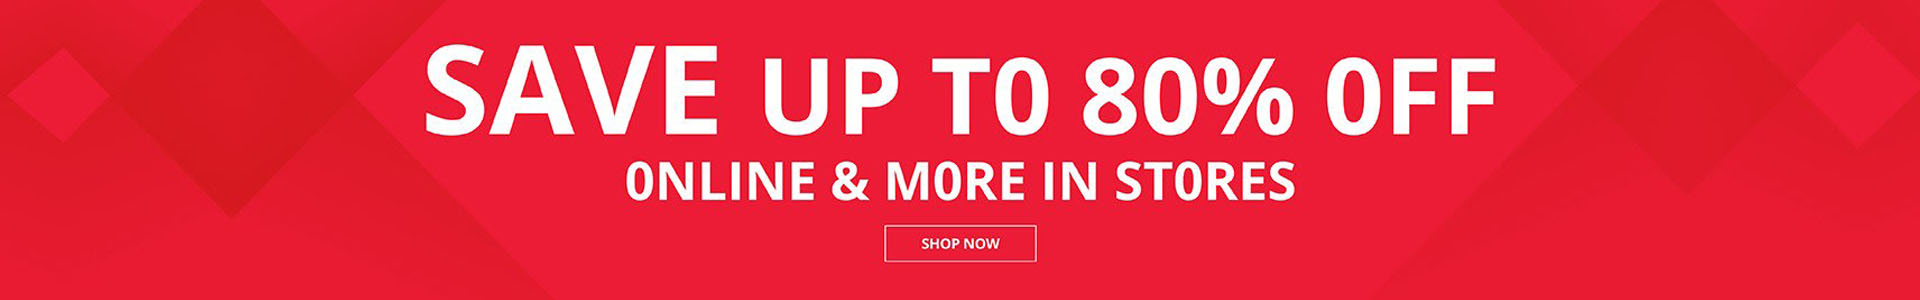 online_sales_and_promotions_storewide_singapore_furniture_online_born_in_colour